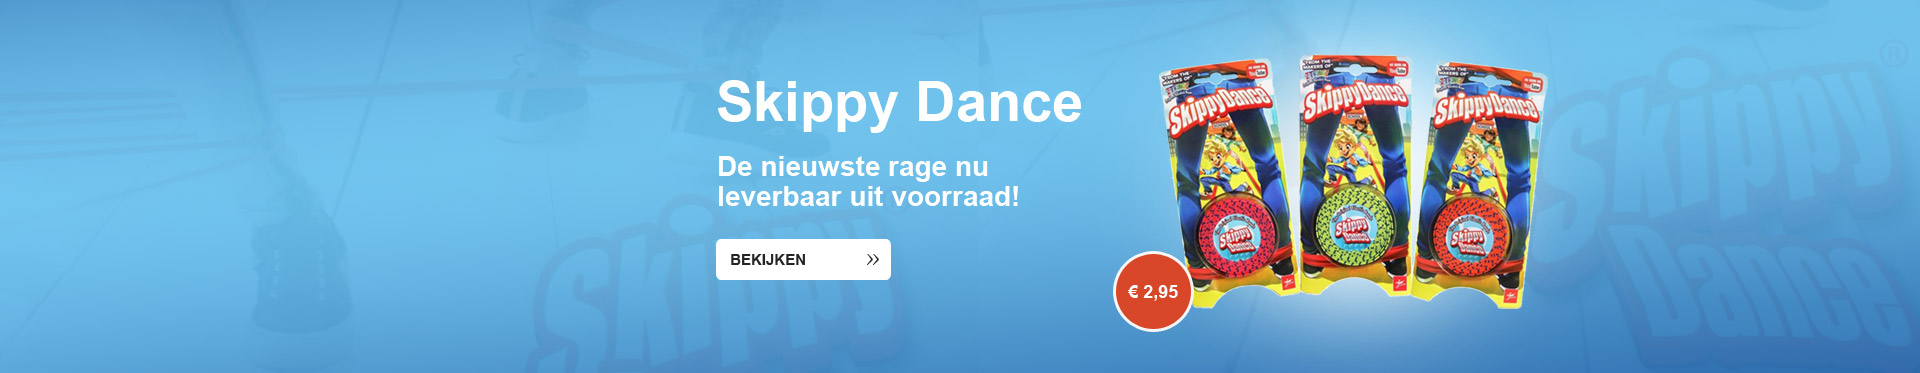 Skippy Dance